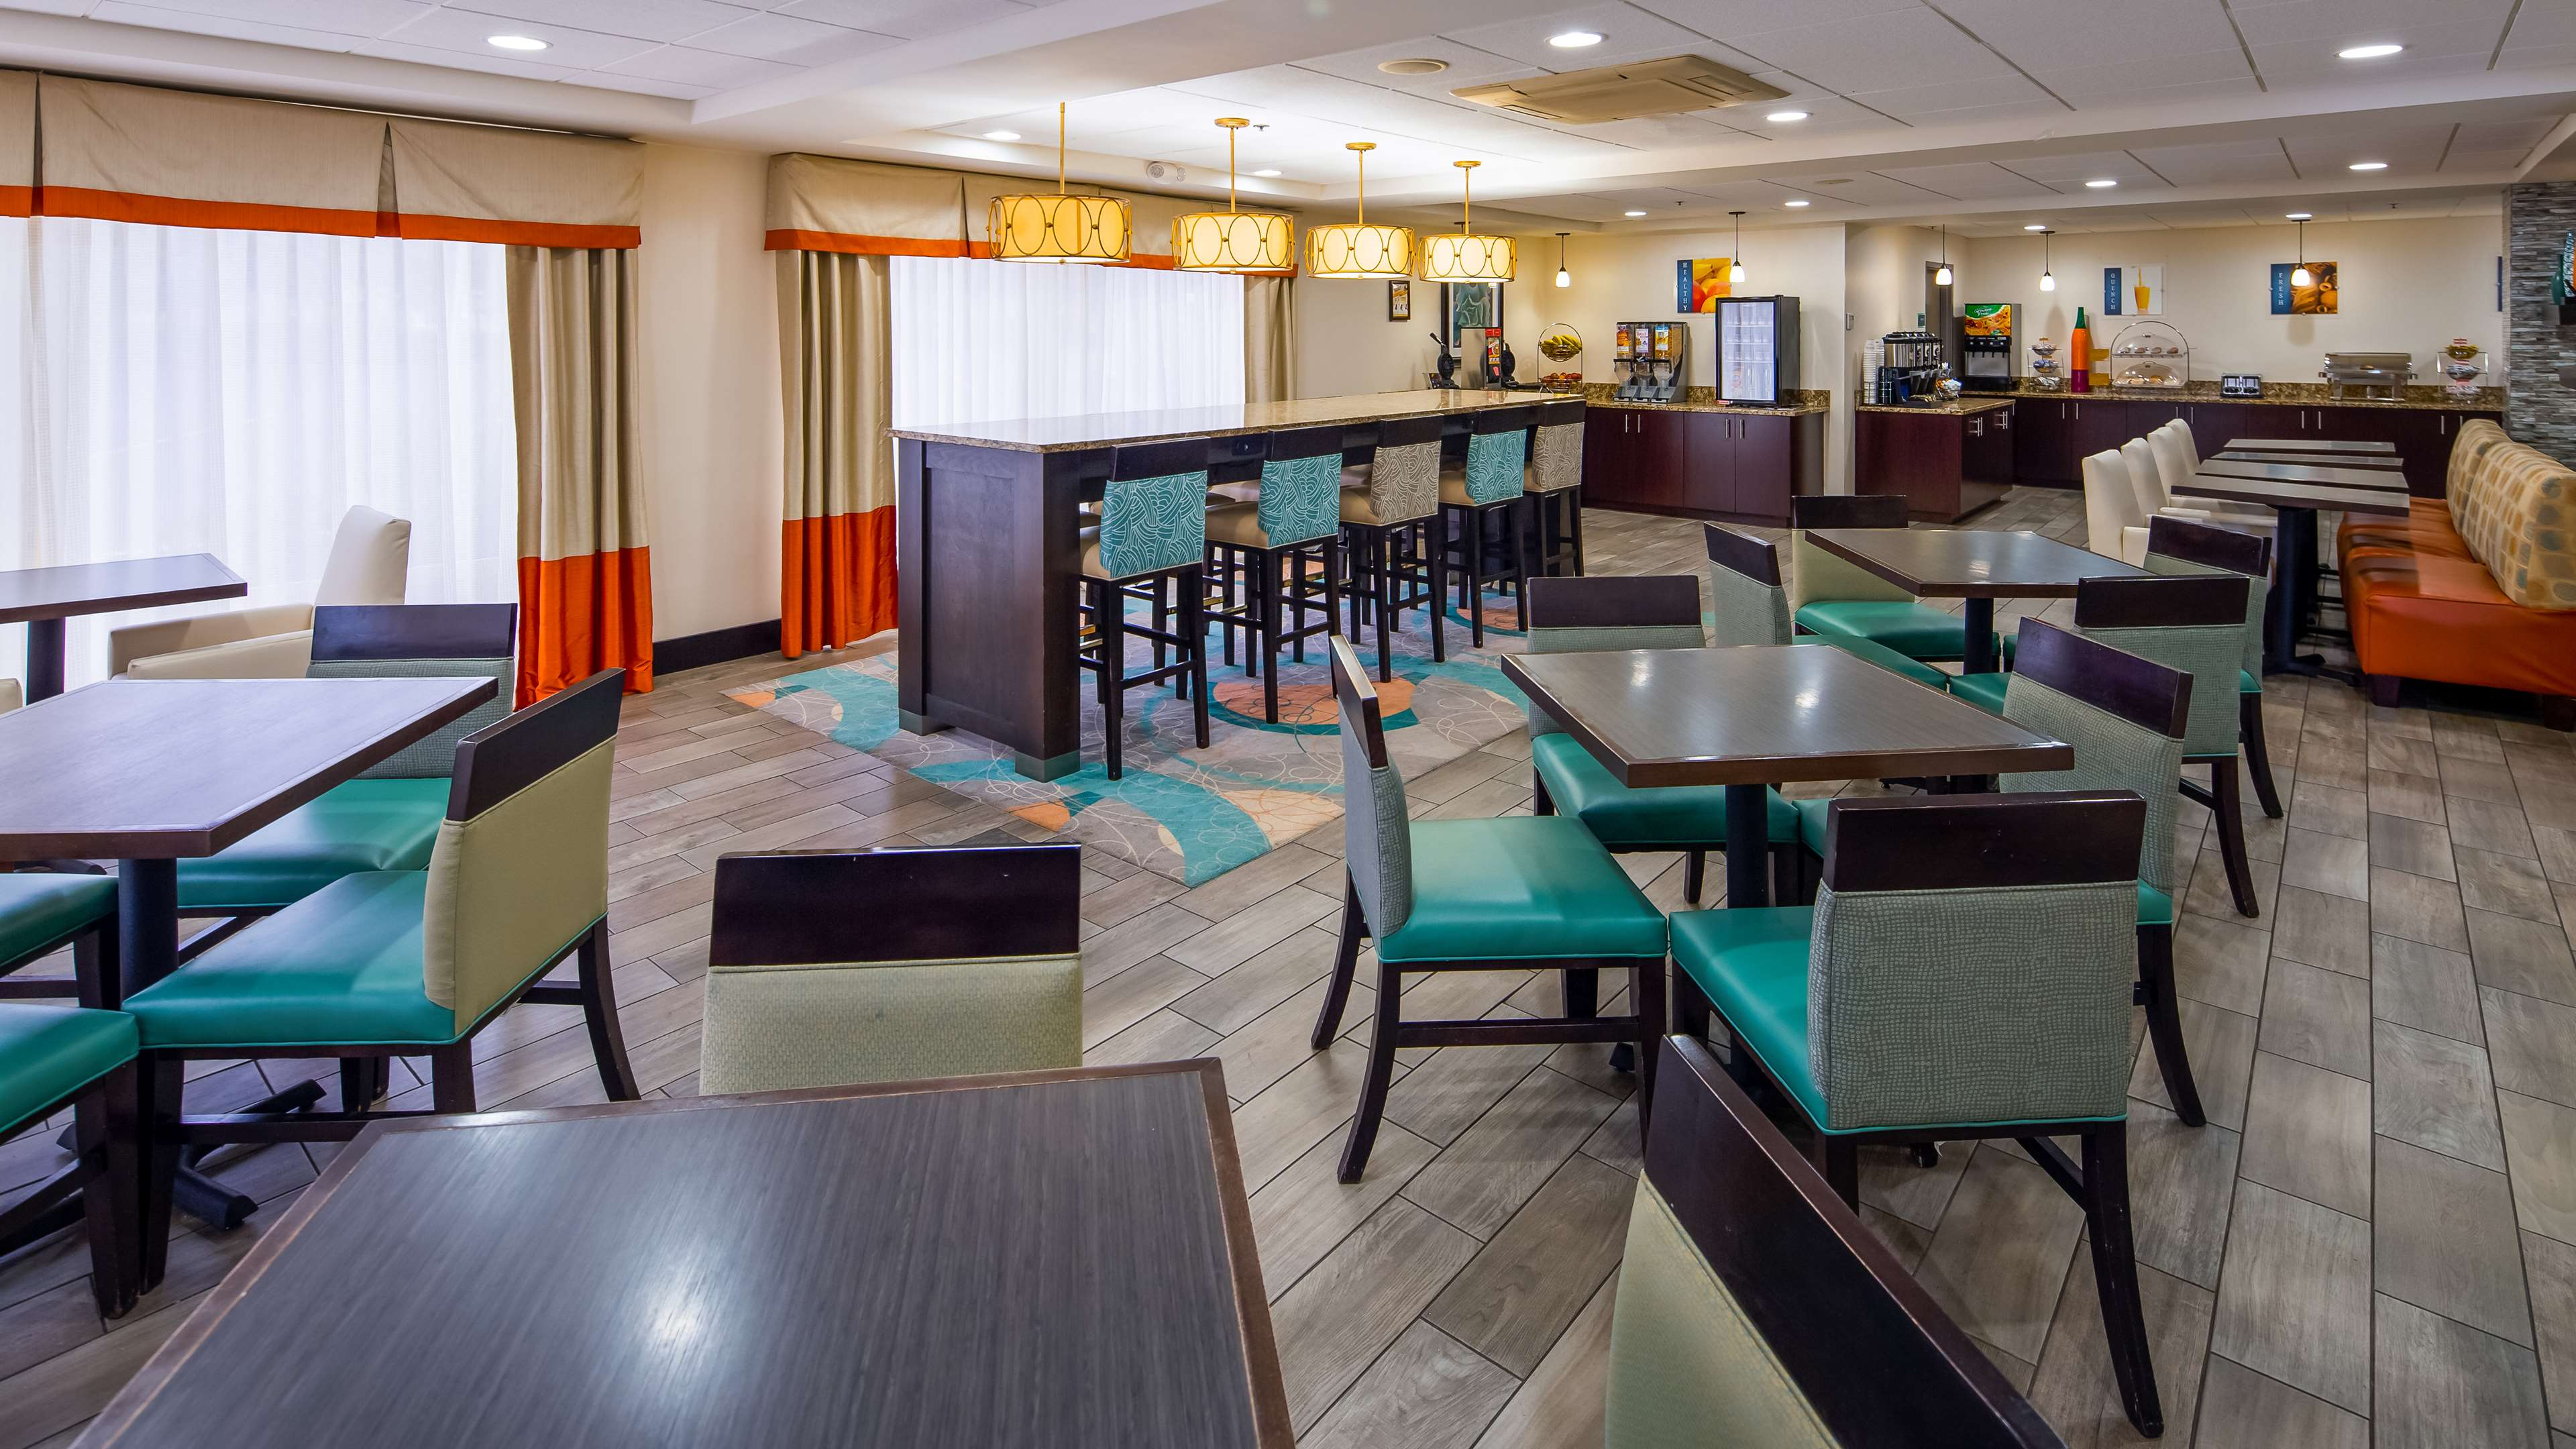 Best Western Plus Chicagoland - Countryside image 3